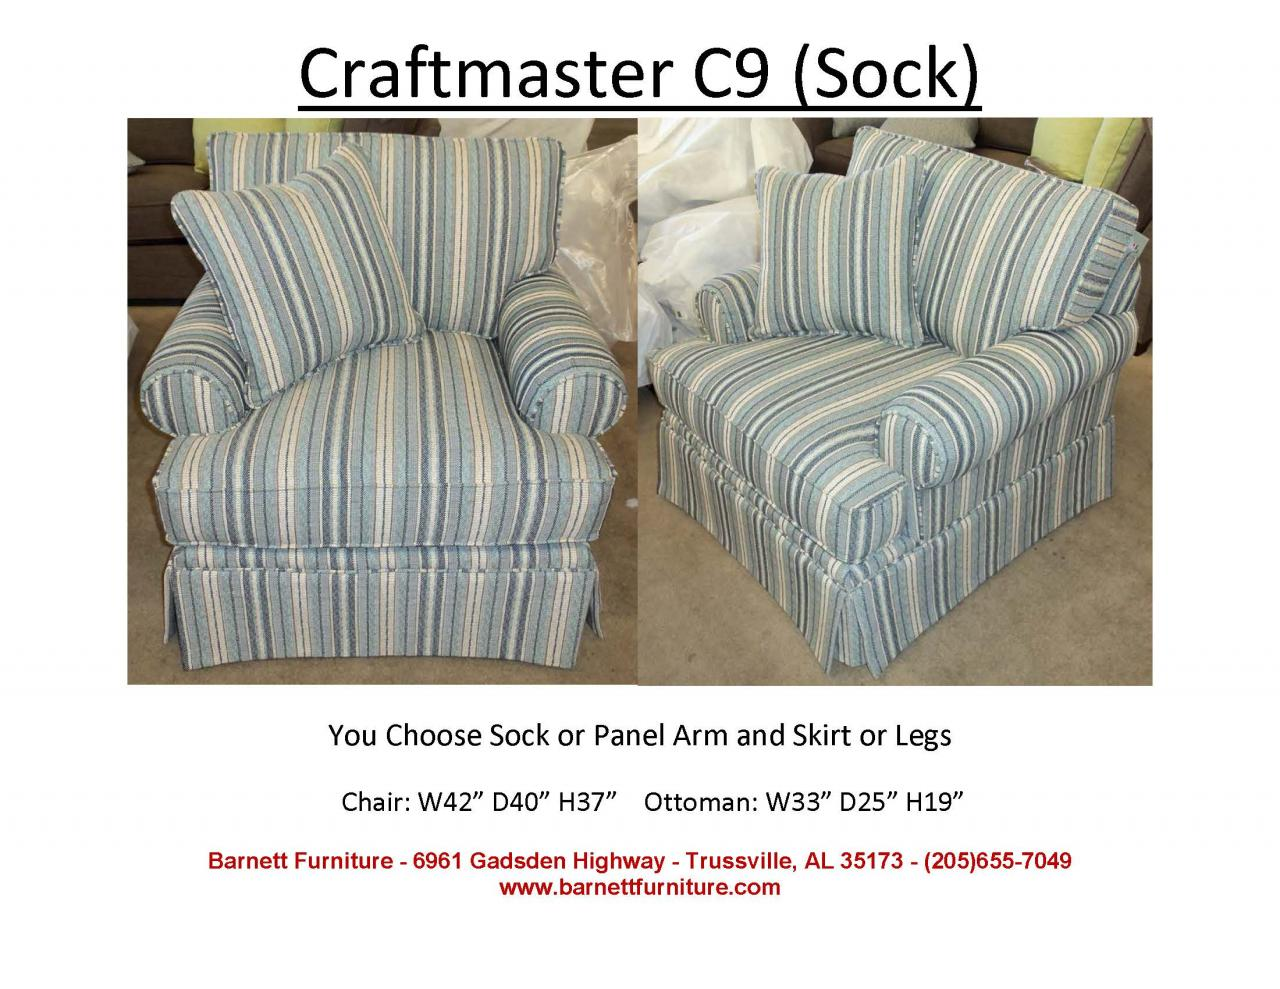 Craftmaster C9 Chair Sock Arm Skirt